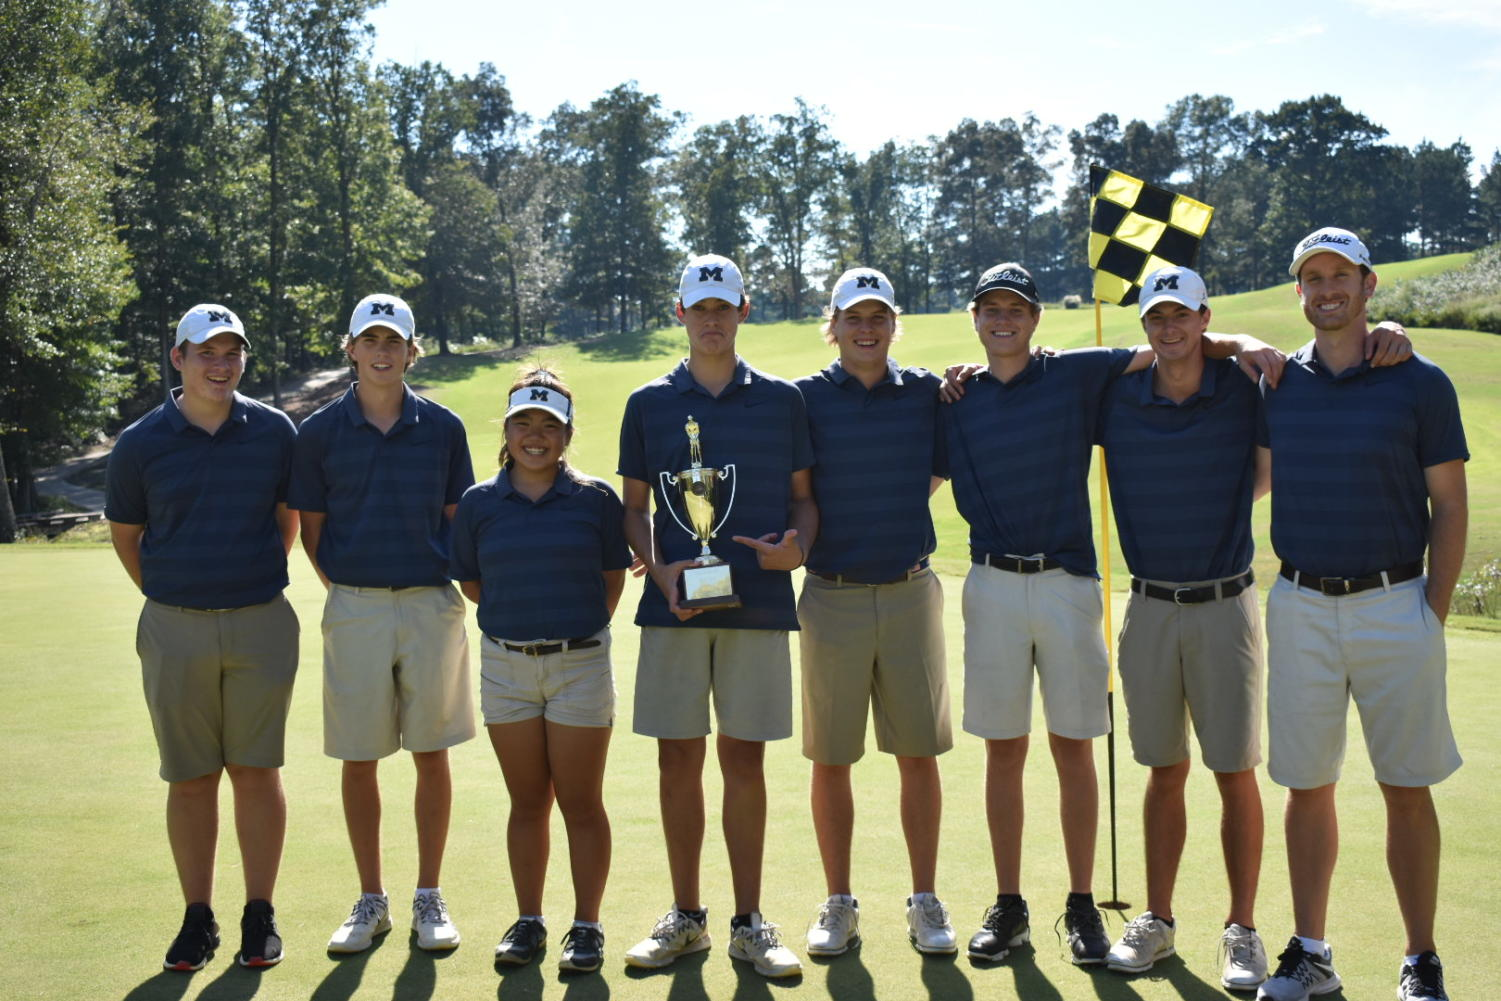 Midlo golf triumphantly celebrates their win in the Regional Tournament.